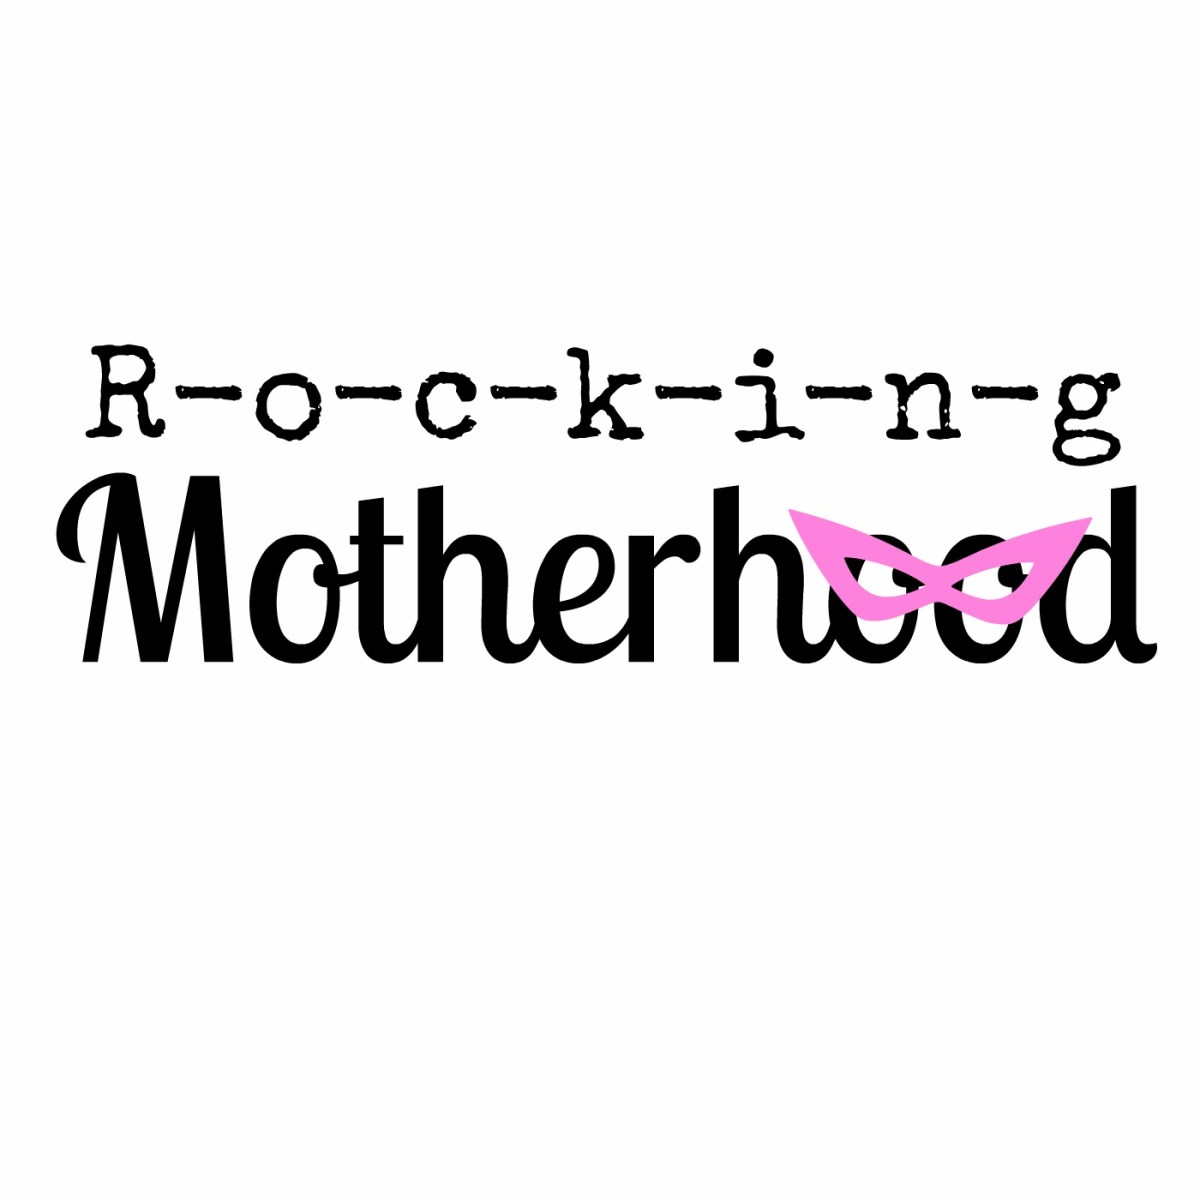 R-o-c-k-i-n-g Motherhood